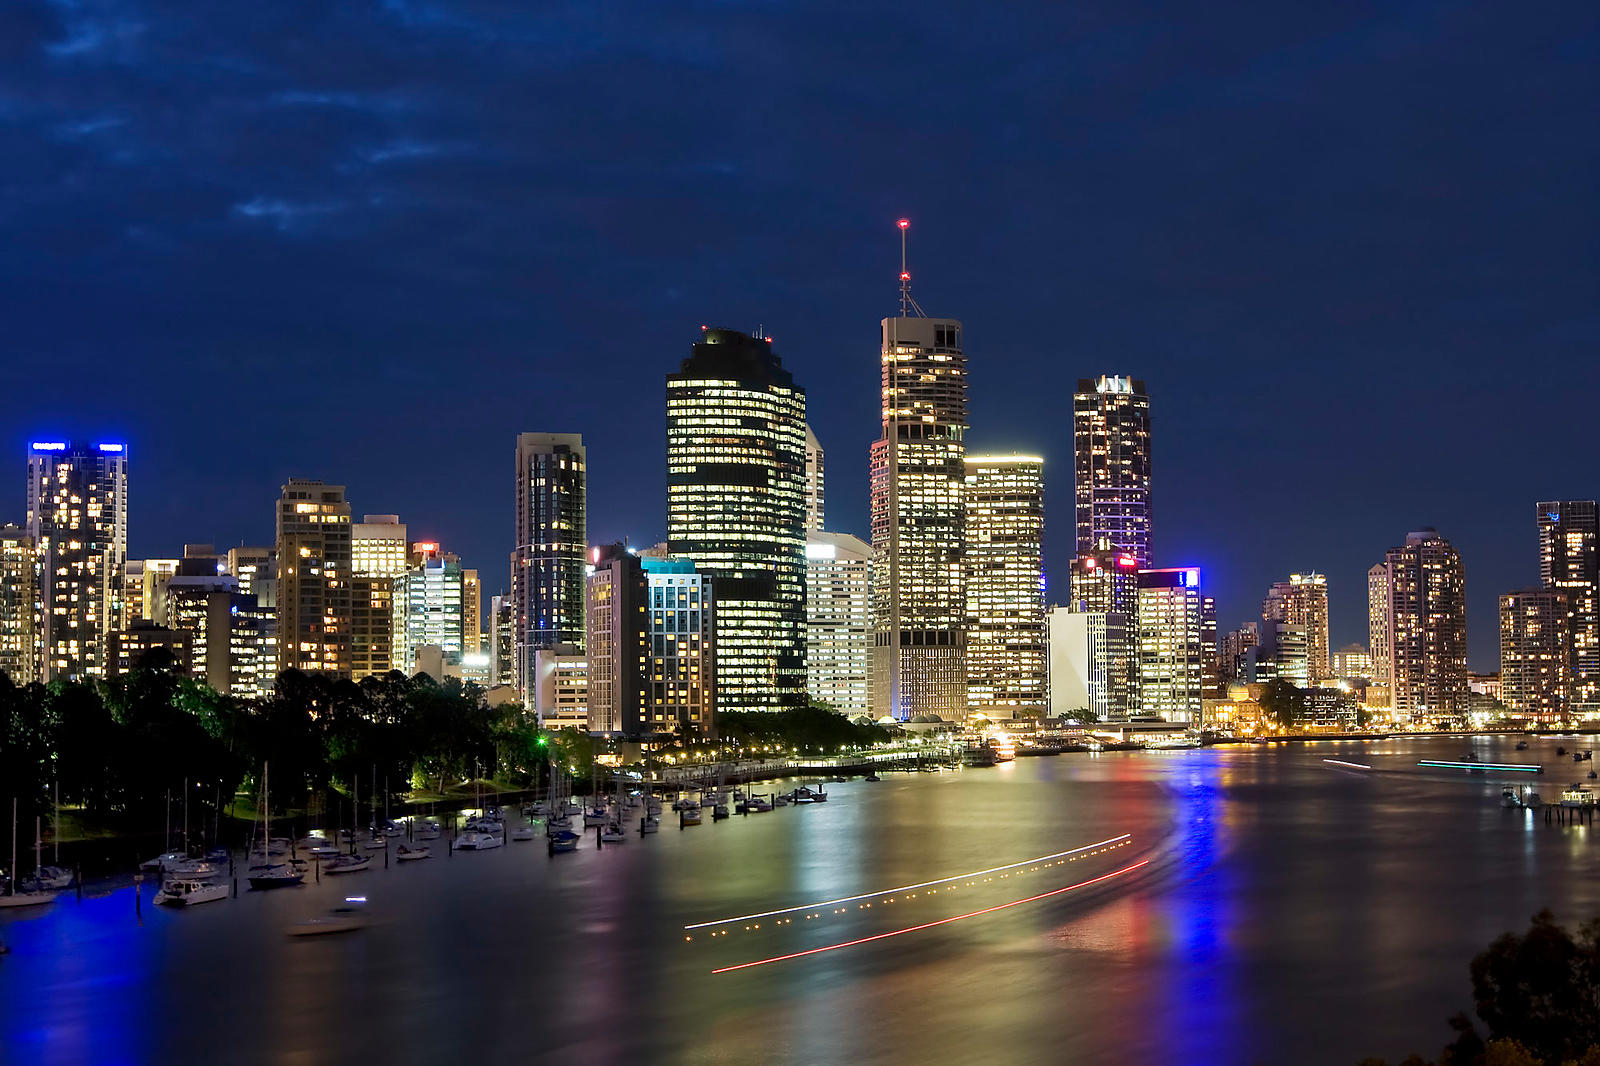 Brisbane City by Night